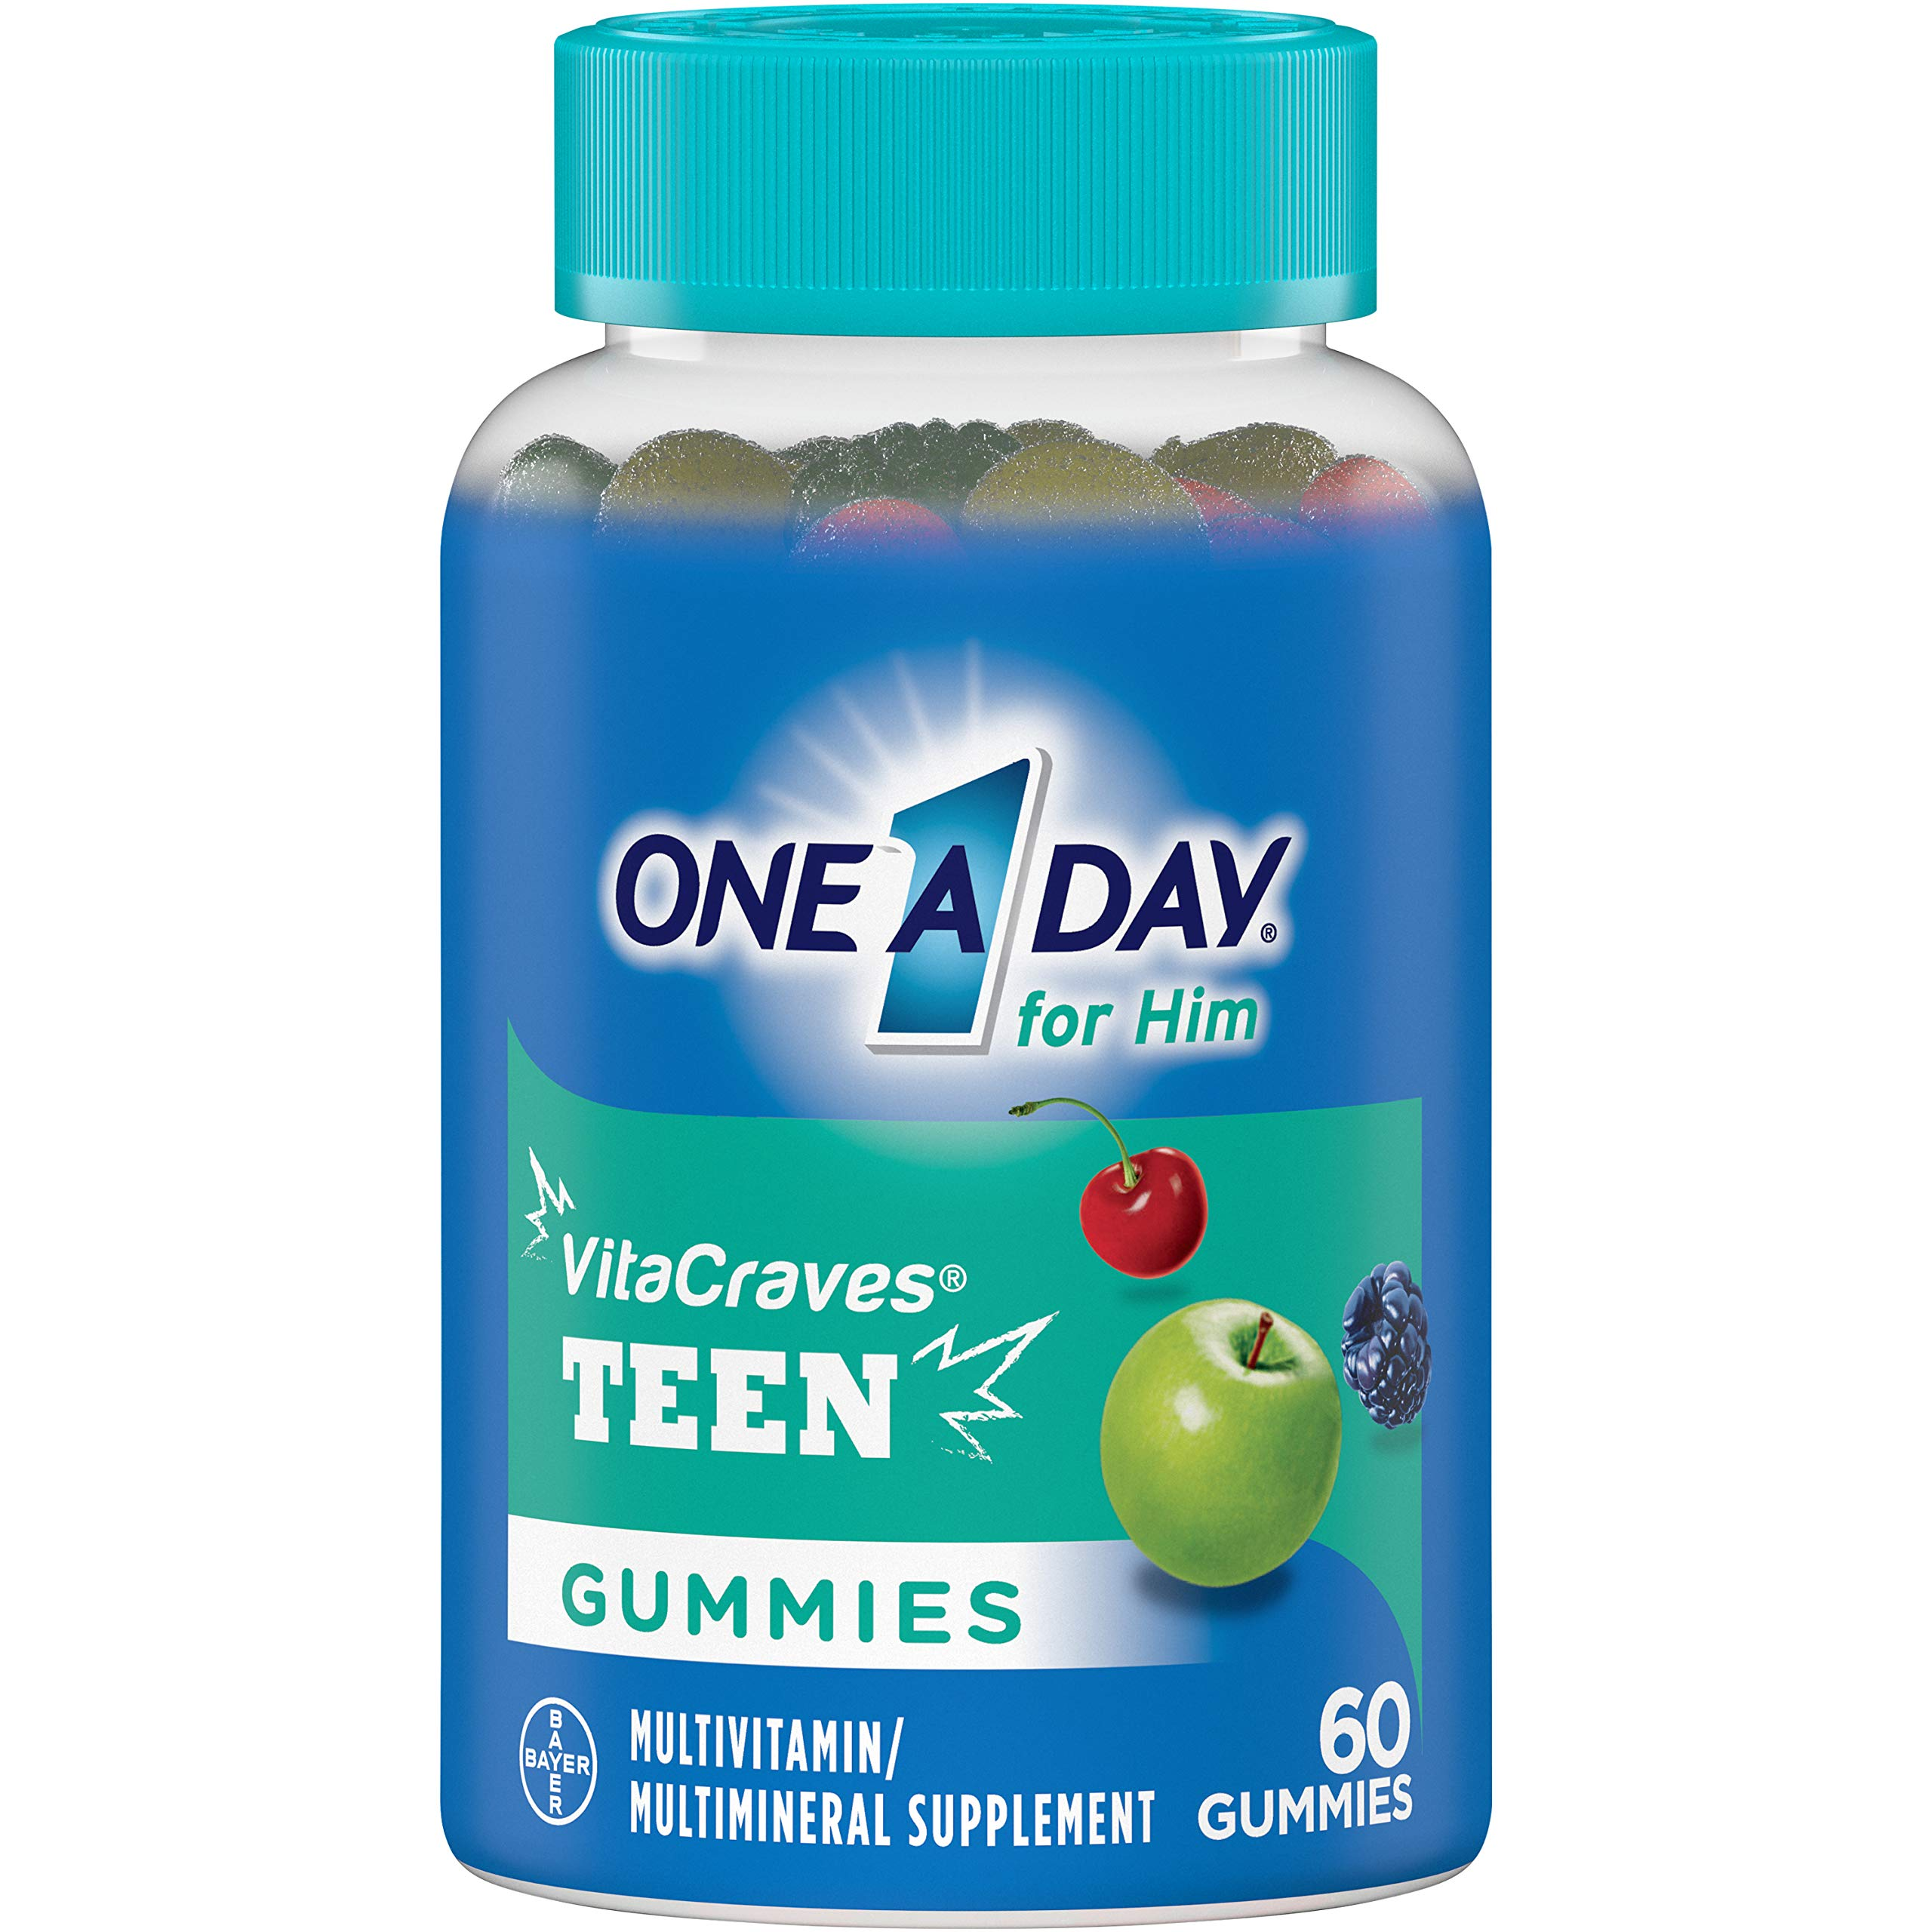 One A Day Teen for Him Multivitamin Gummies, Supplement with Vitamin A, Vitamin C, Vitamin D, Vitamin E and Zinc for Immune Health Support* & more, 60 Count